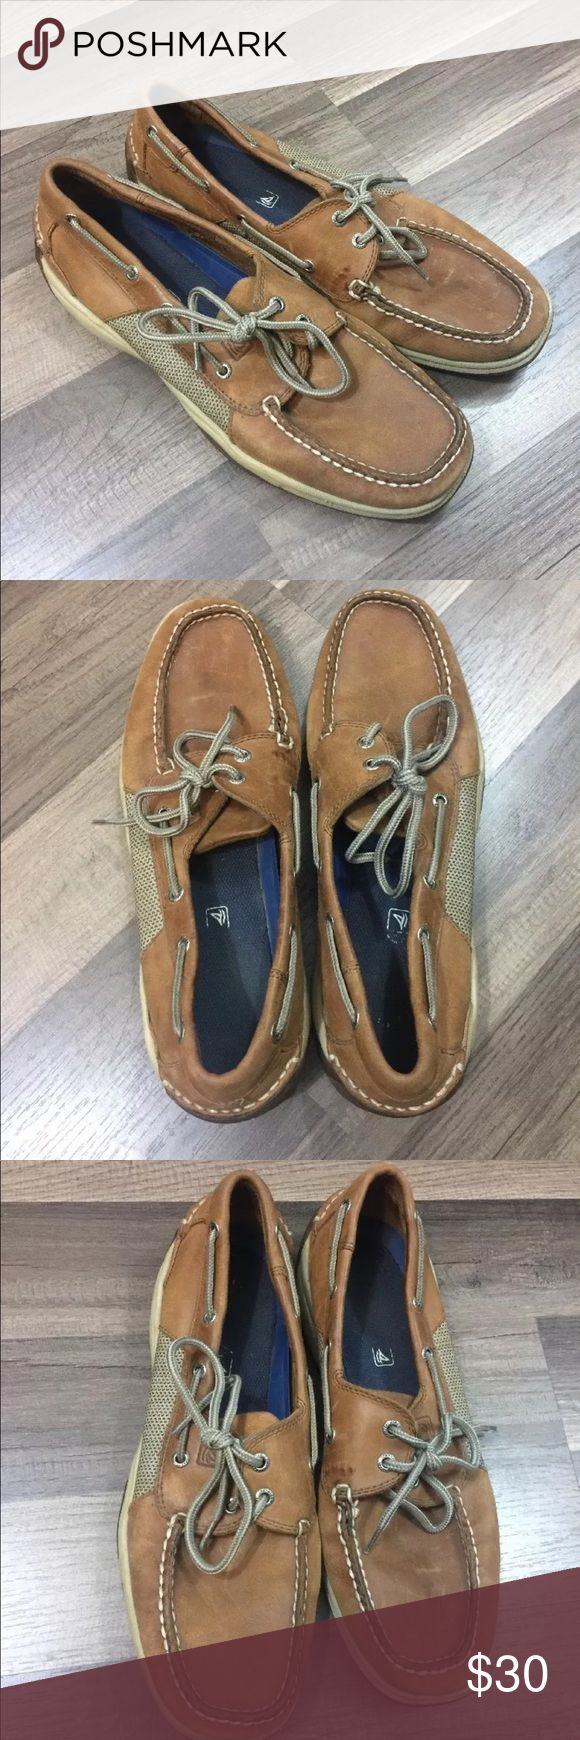 Sperry Topsider Intrepid 2 Eye Boat Shoes Sperry Topsider  Intrepid 2 Eye Boat Shoes  Mens Size 11M  Great condition! No flaws. Sperry Top-Sider Shoes